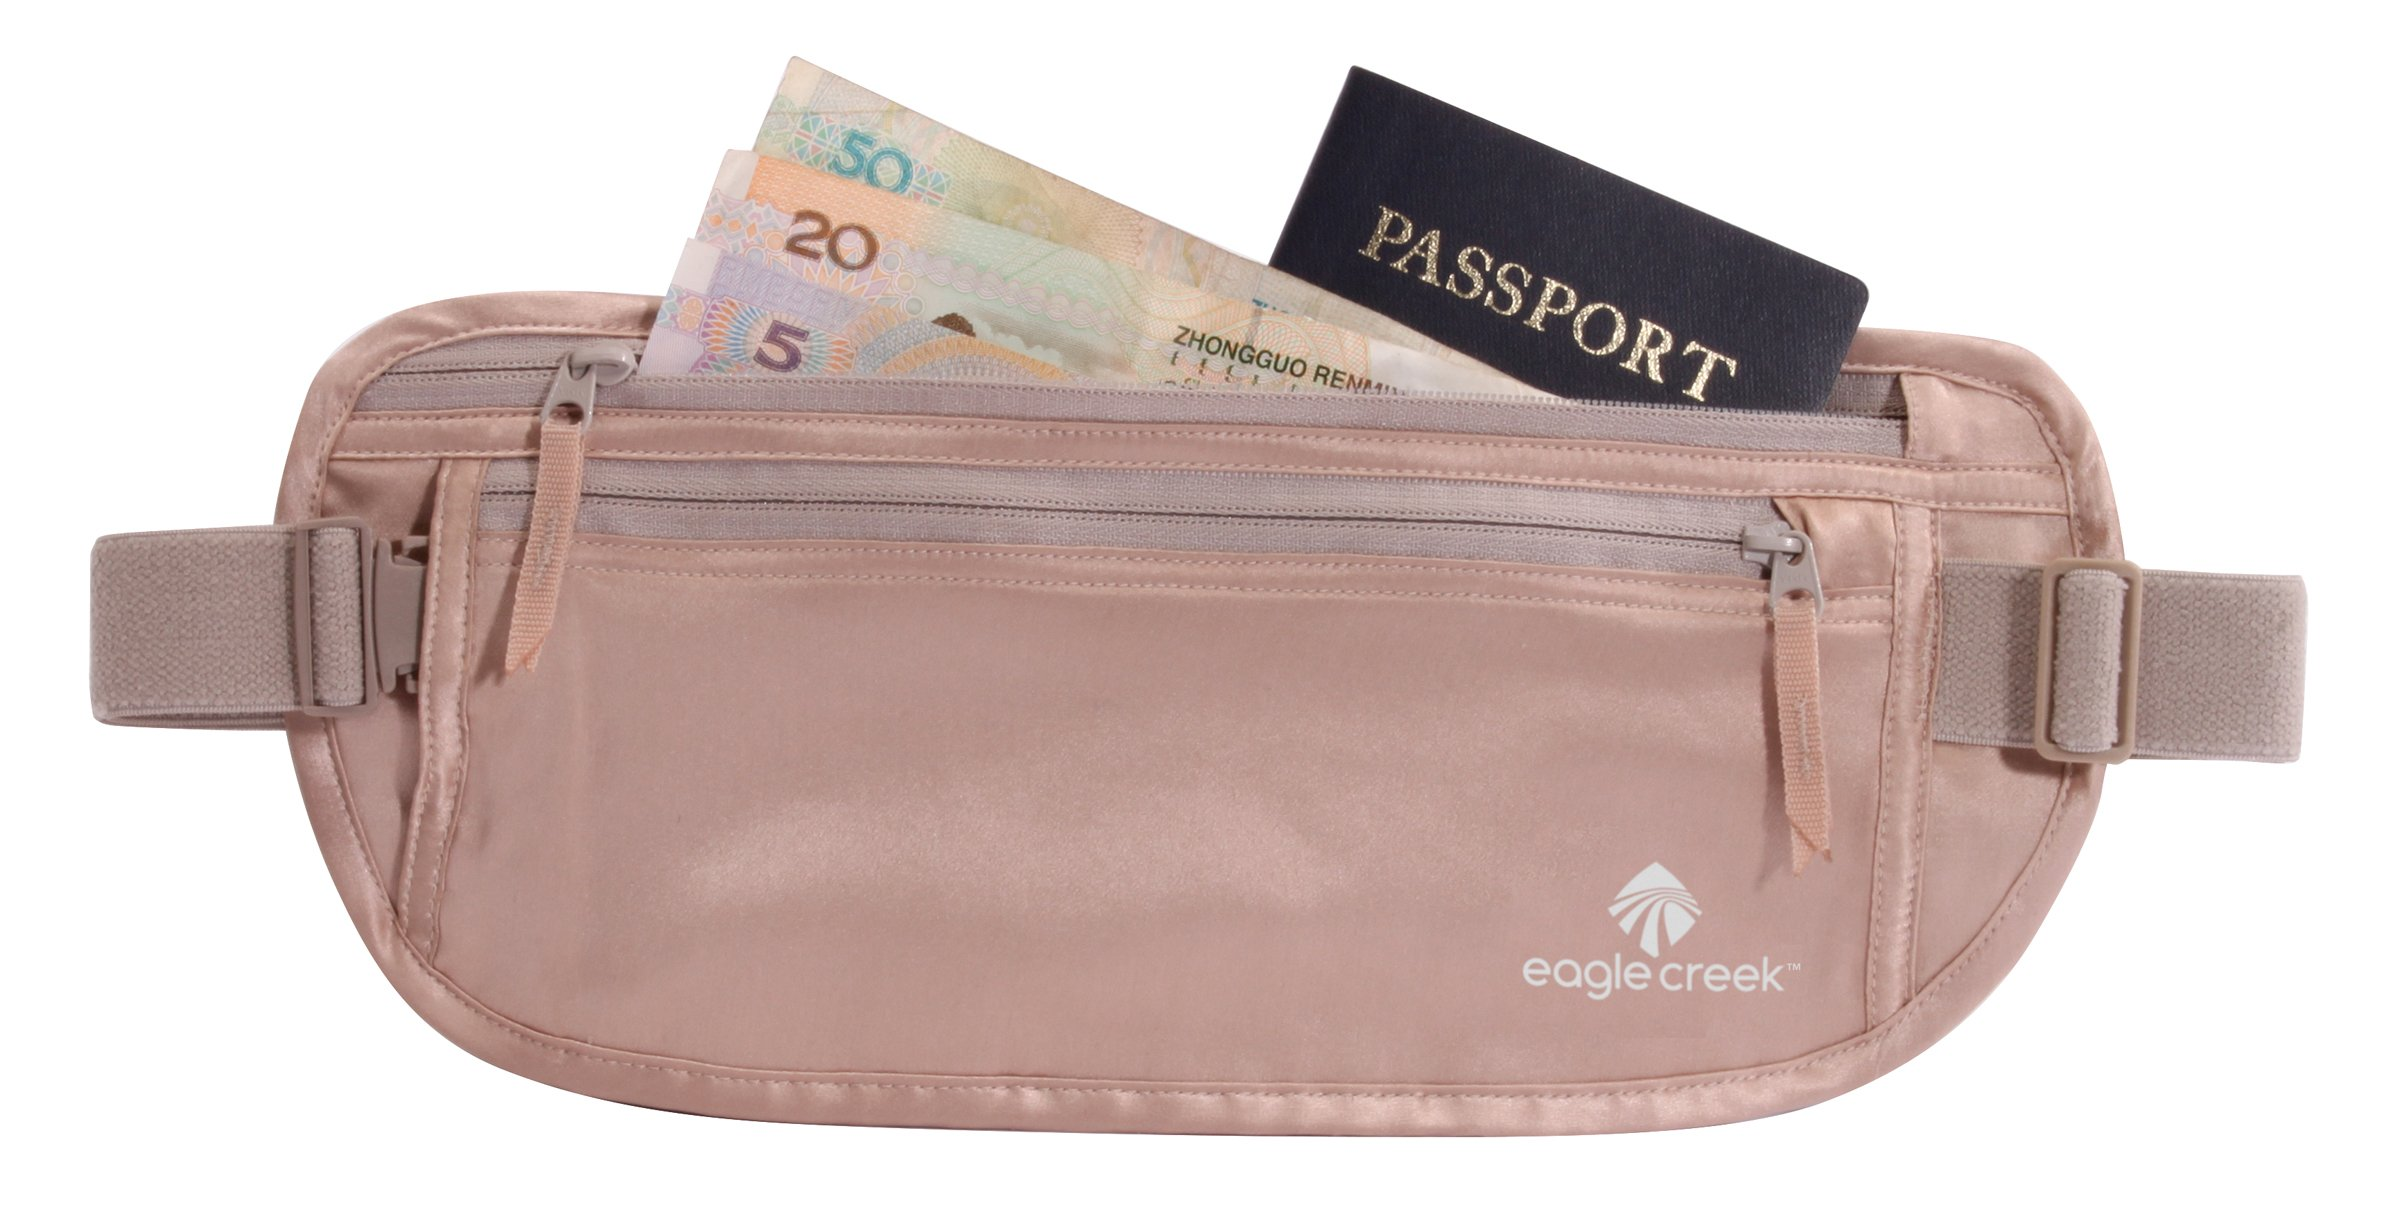 Eagle Creek Silk Undercover Money Belt, Rose